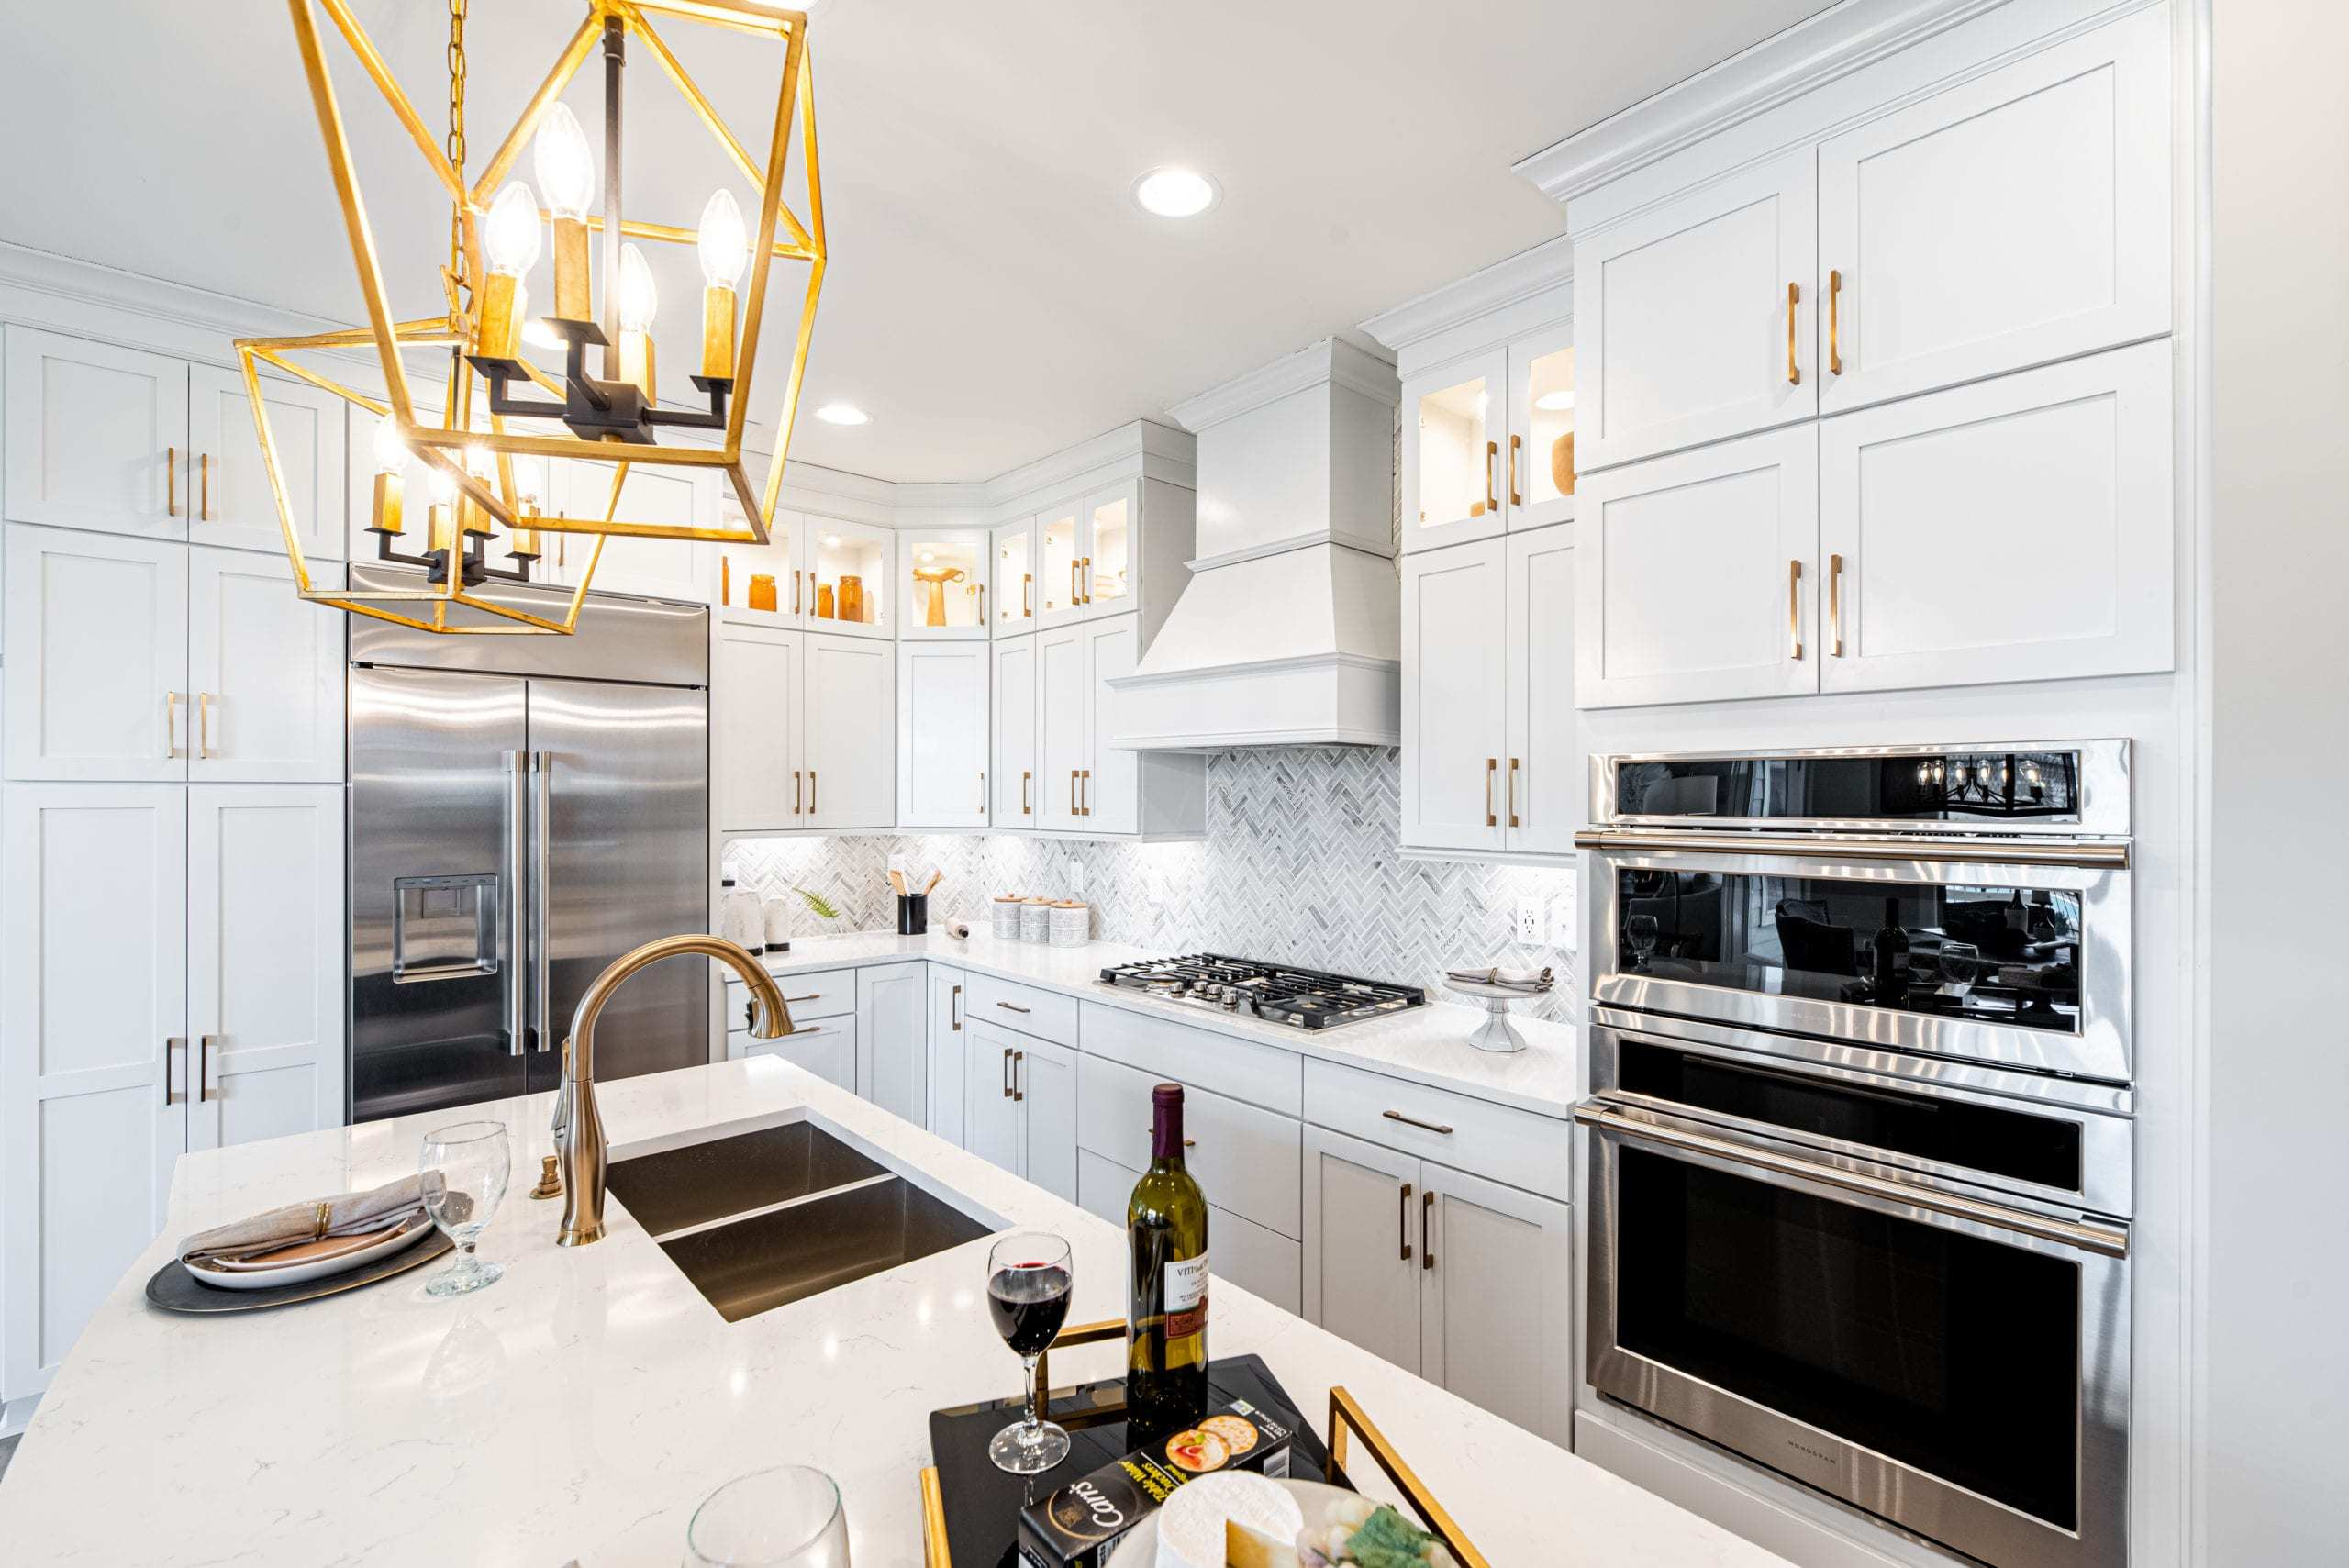 Kitchen featured in the Palazzo - Raleigh ** By Epcon Communities in Raleigh-Durham-Chapel Hill, NC